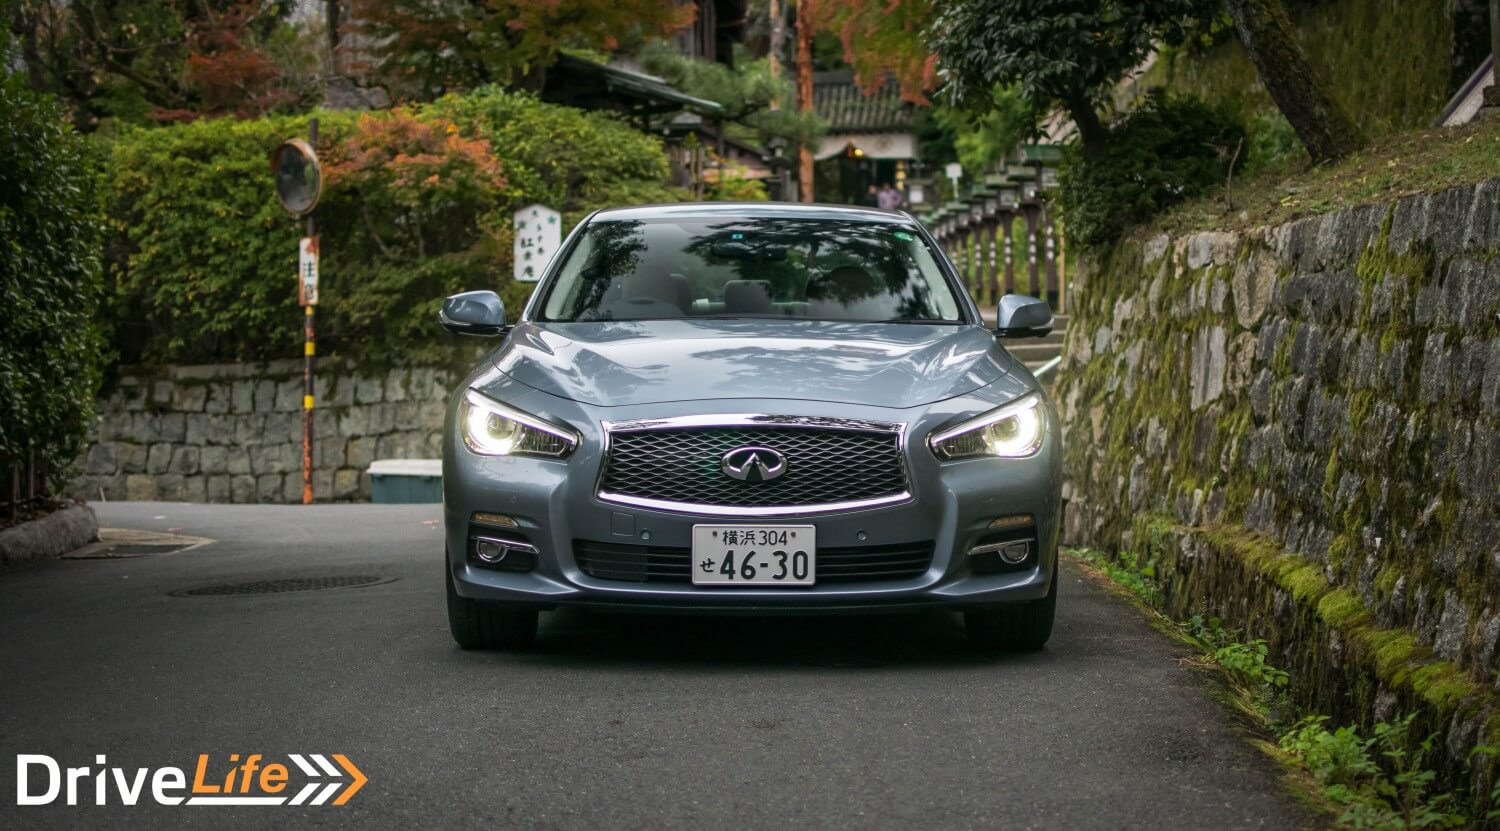 Drive-Life-NZ-Car-Review-Infiniti-Q50-2.0t-05